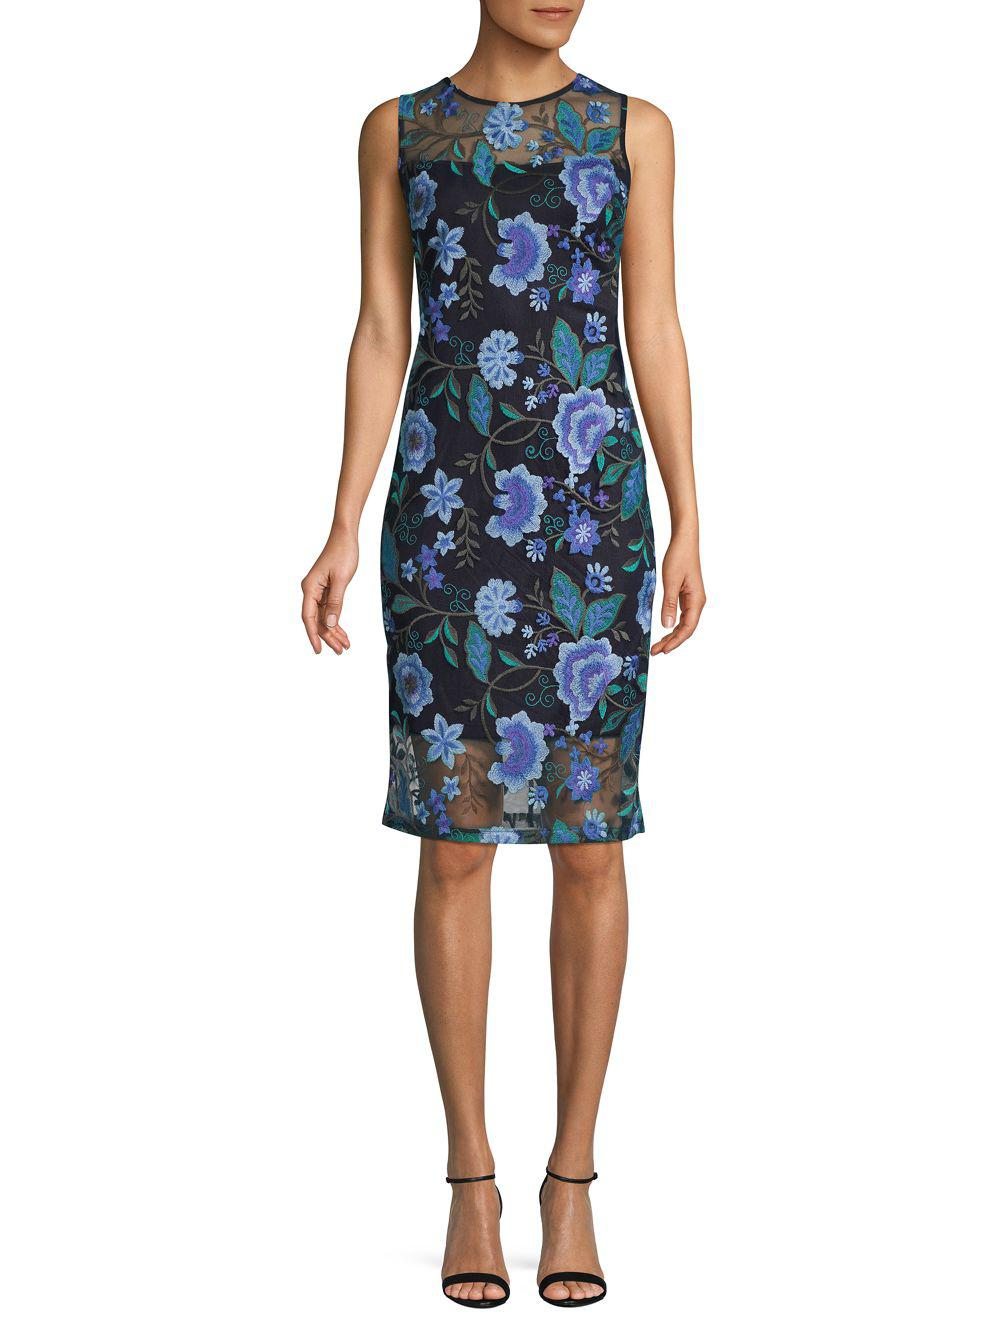 5f56ea8a Calvin Klein Sleeveless Floral Embroidered Sheath Dress in Blue - Lyst